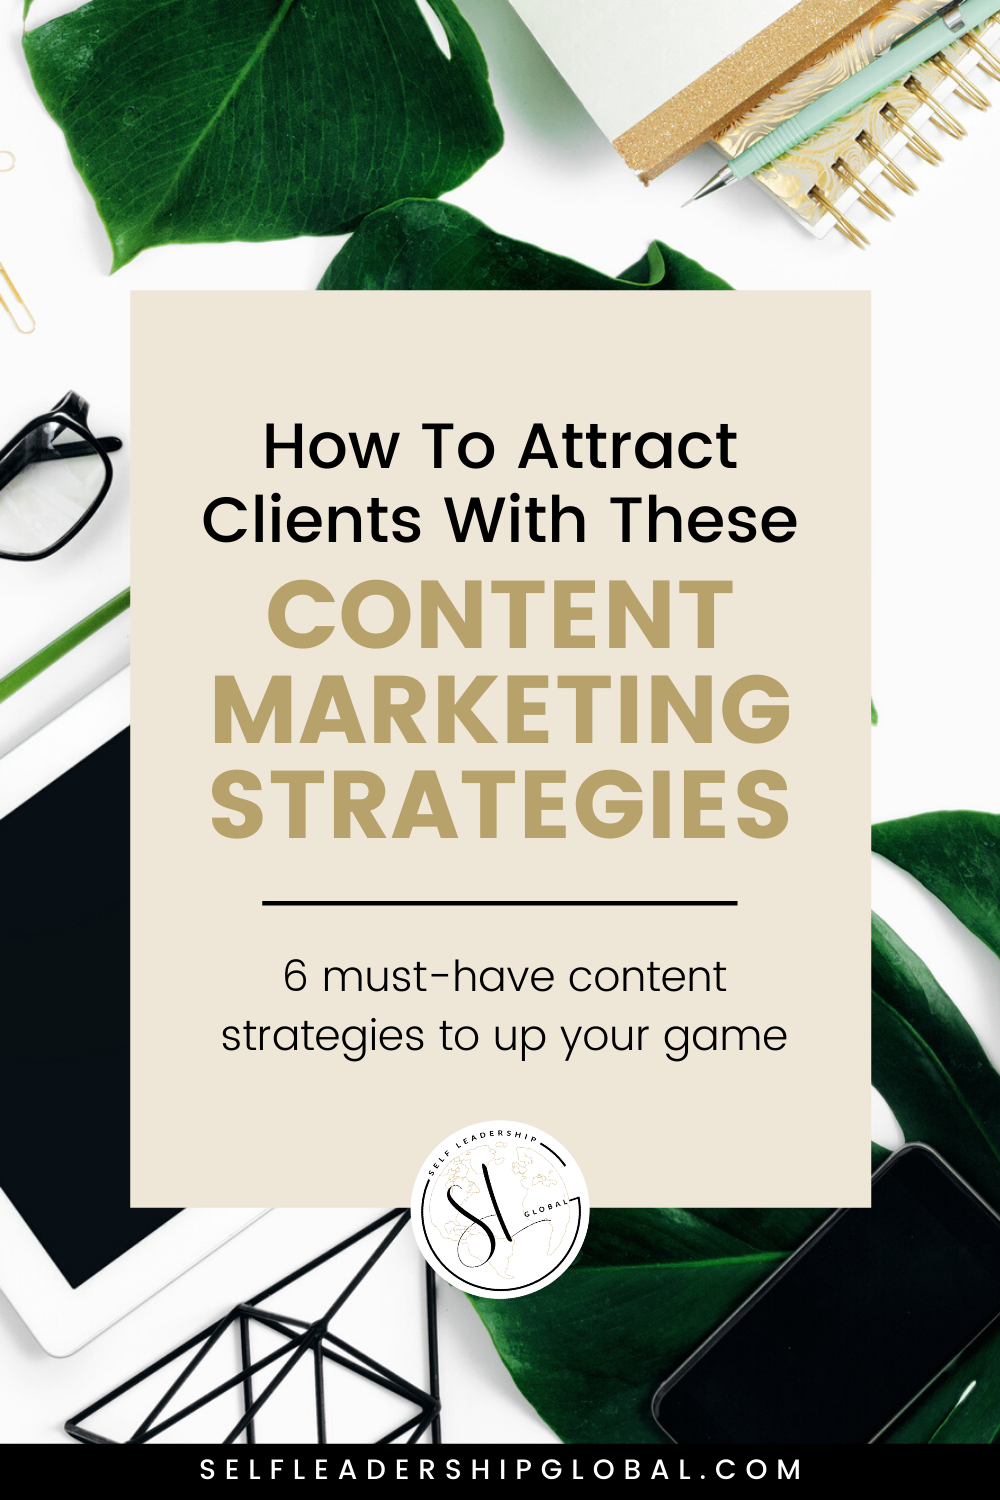 How To Attract Clients with These Content Marketing Strategies | Entrepreneur Tips Coach Business Marketing Tips - Want to perfect your content marketing strategy ideas tips as an online coach or online entrepreneur? Here's how you can take your content creation ideas up a notch to grow your business in 2020. Self Leadership Global #onlinebusiness #onlineentrepreneur #coachbusiness #contentmarketing #content